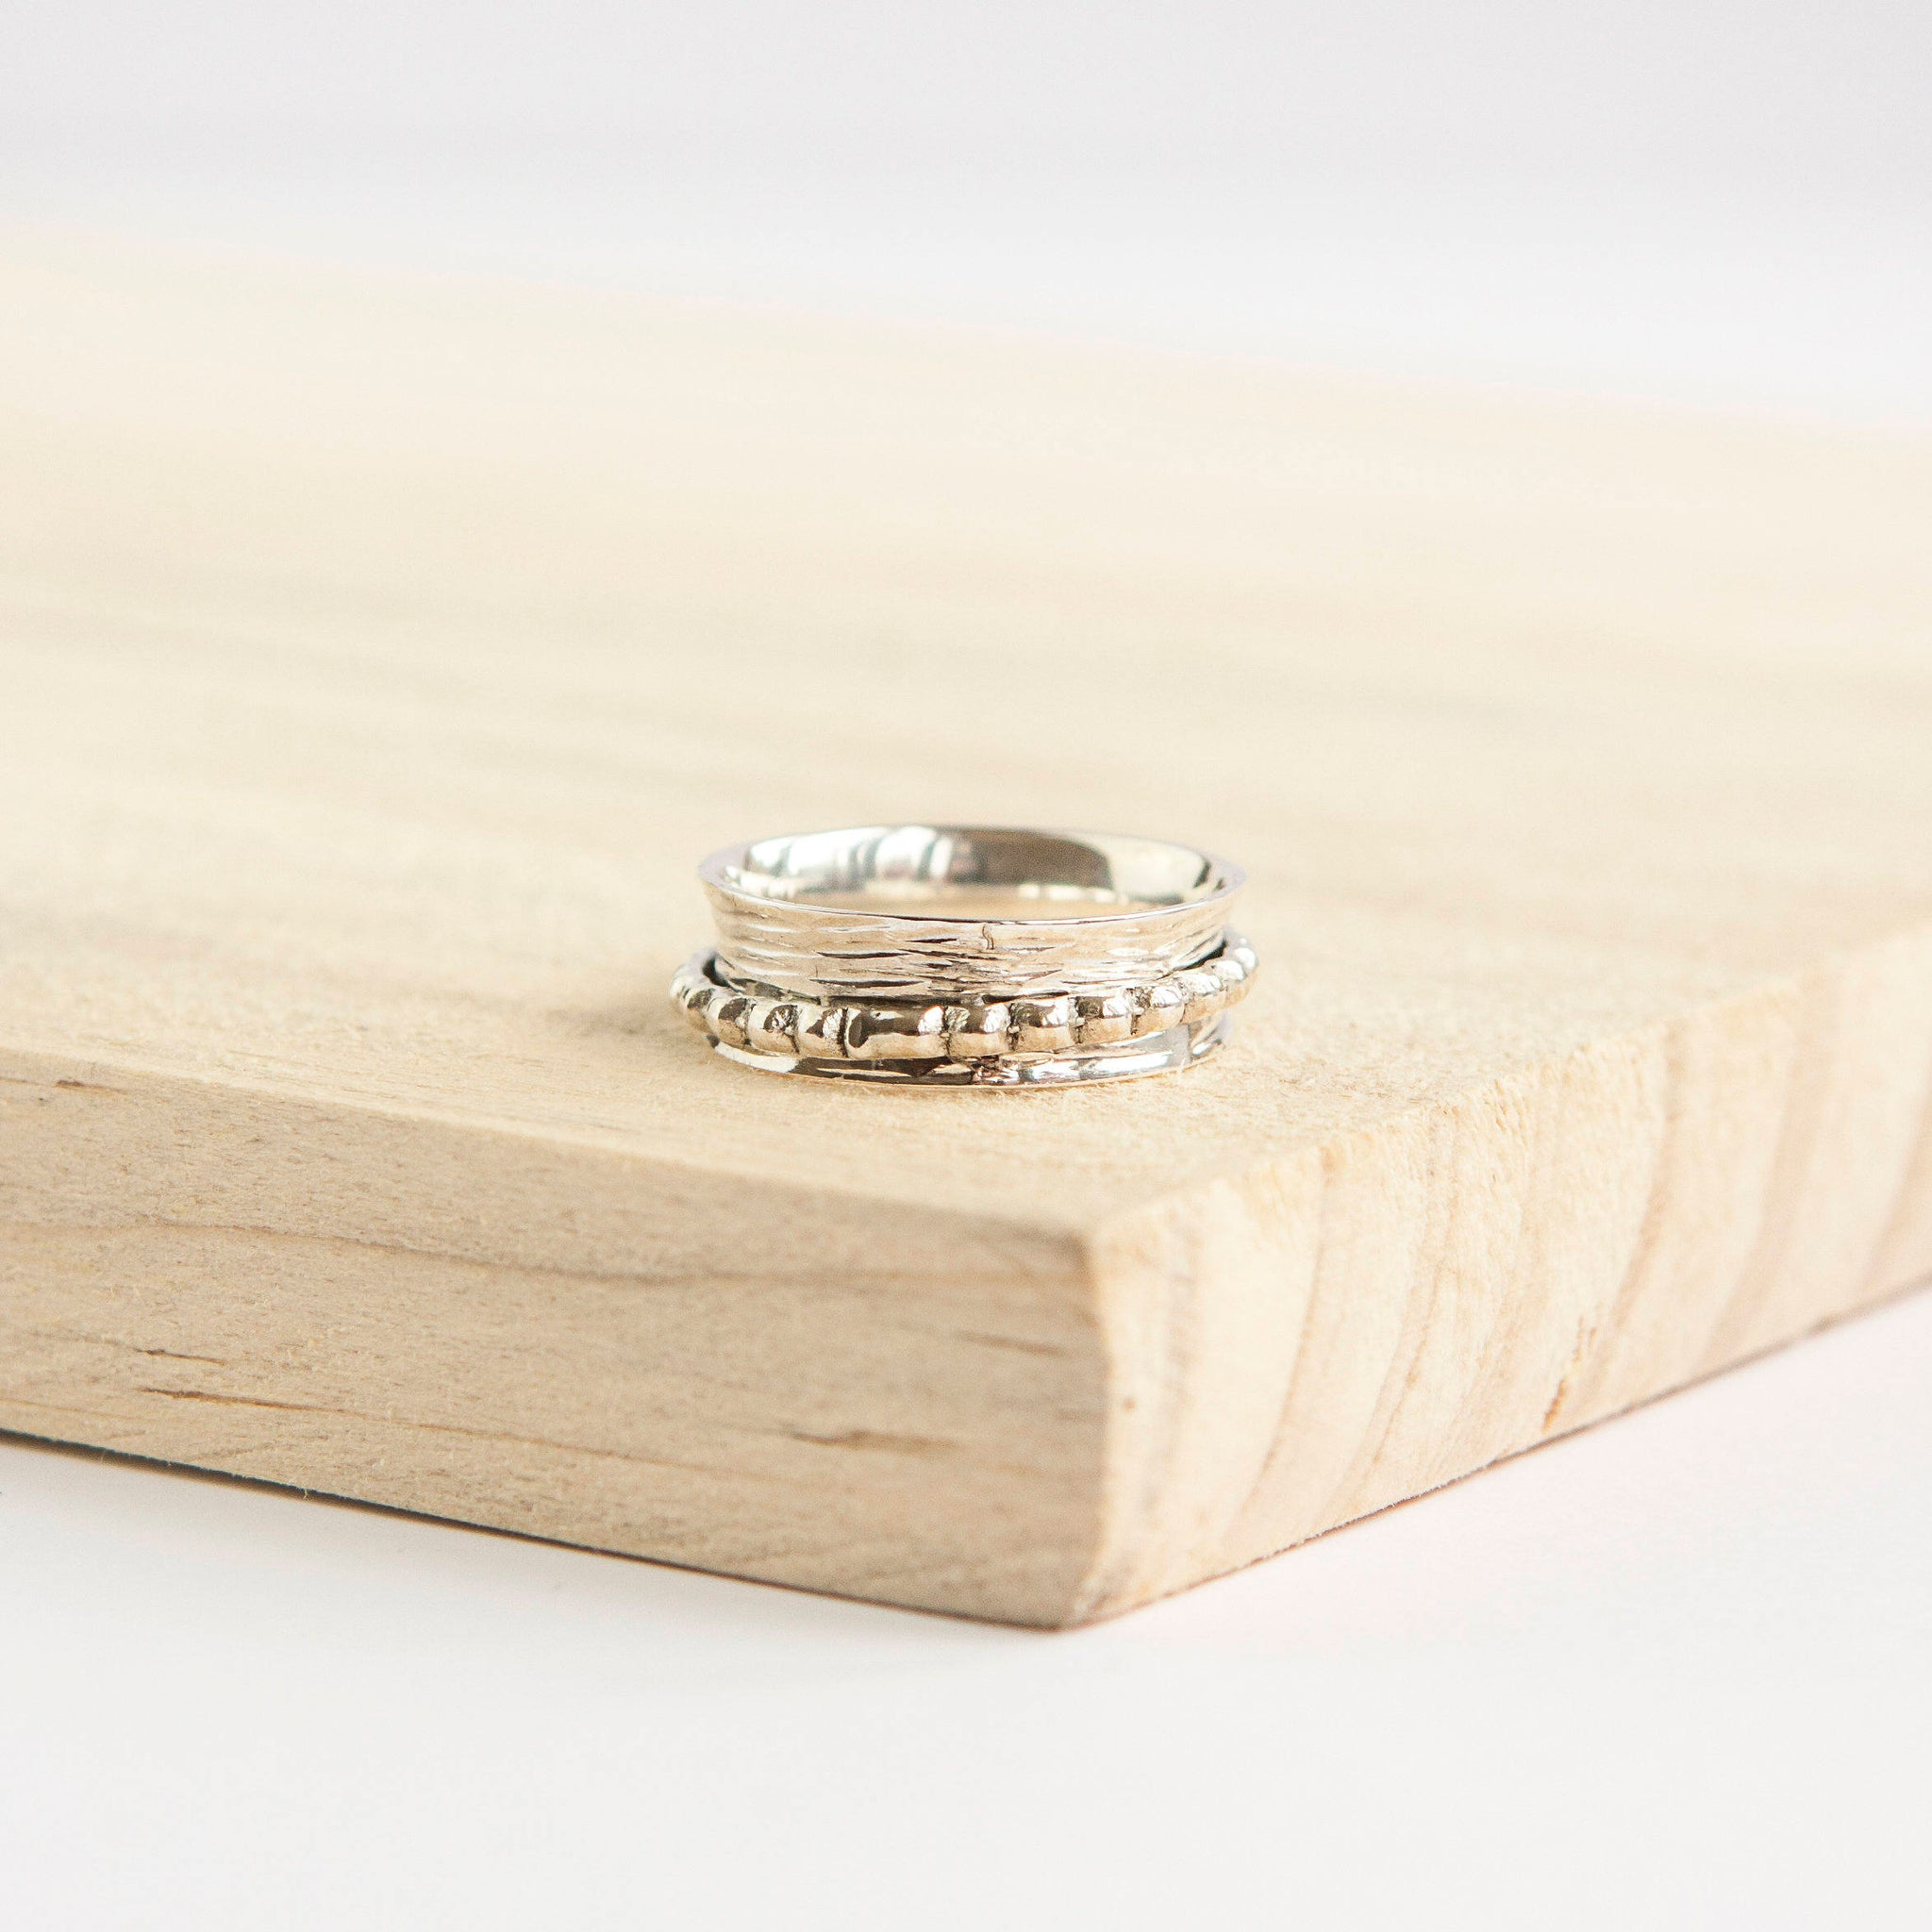 ring gearing rings engagement sarah jodie bespoke boxed s leaf inspired